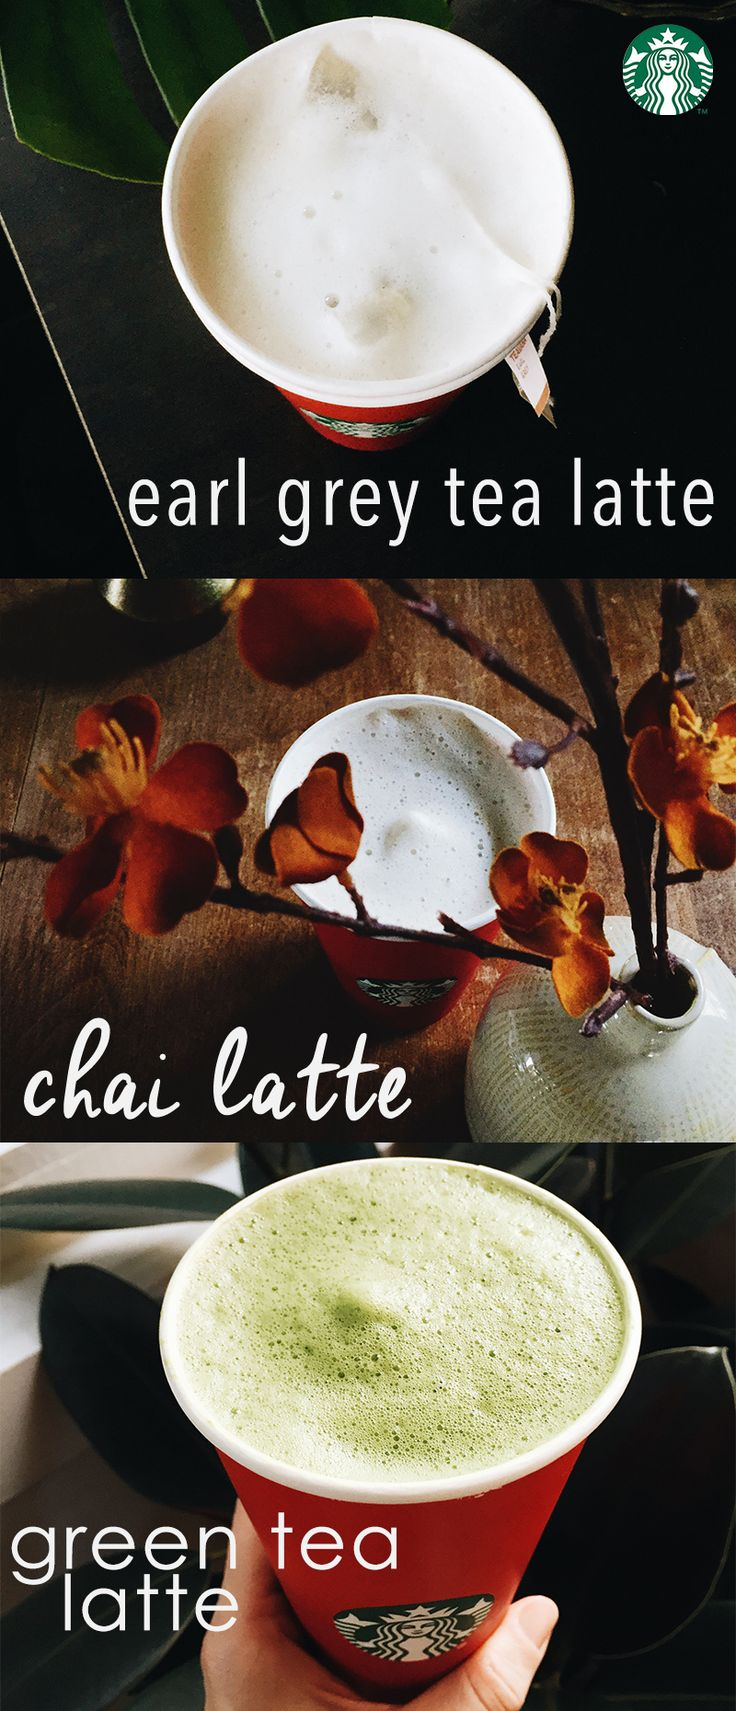 We have three tea lattes year-round: Earl Grey Latte, Chai Tea Latte, and Green Tea Latte. They're made just like our classic lattes, but instead of espresso, we use tea.